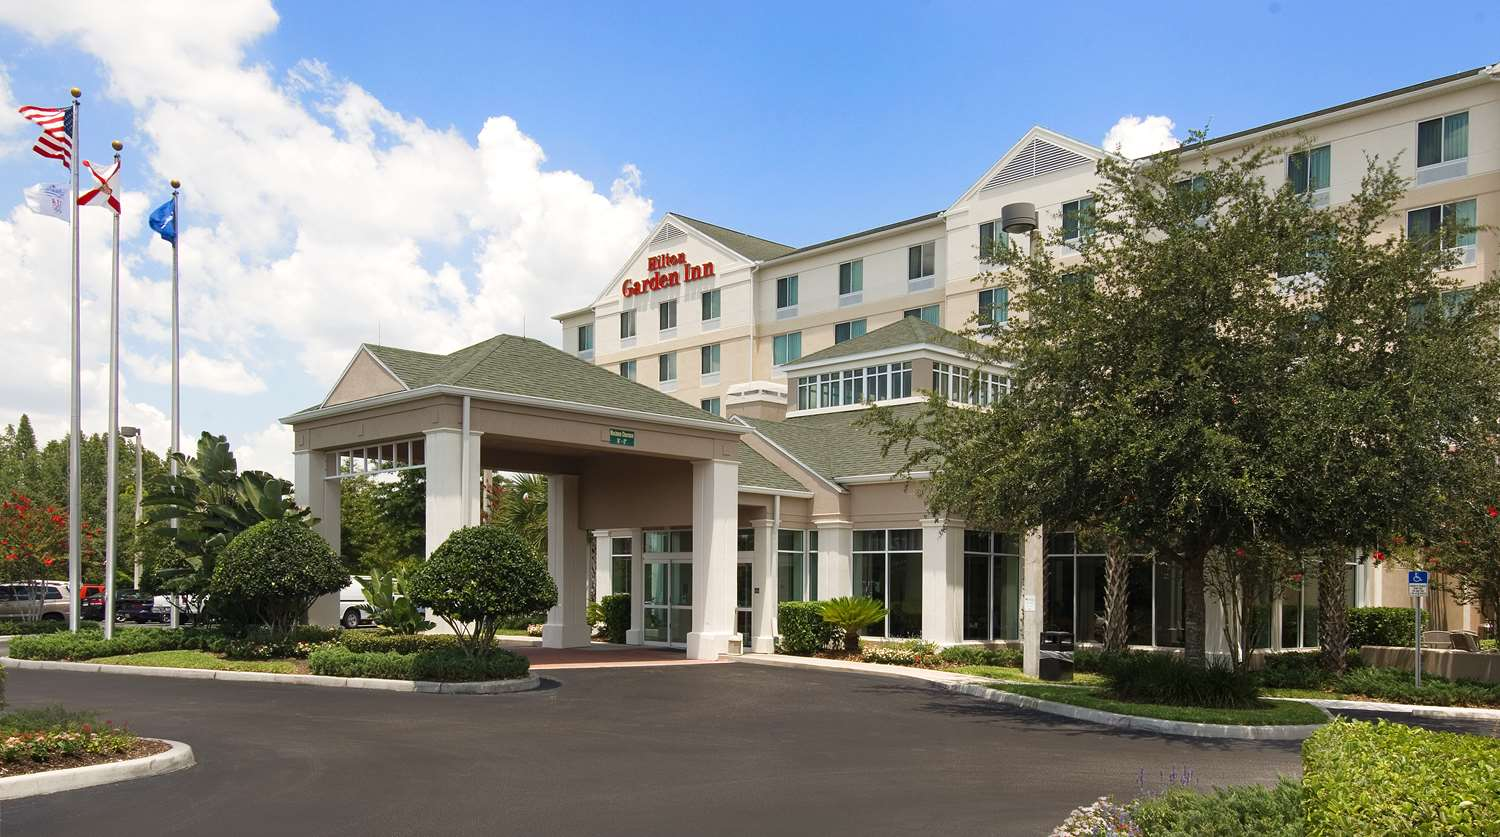 Hilton Garden Inn Temple Terrace